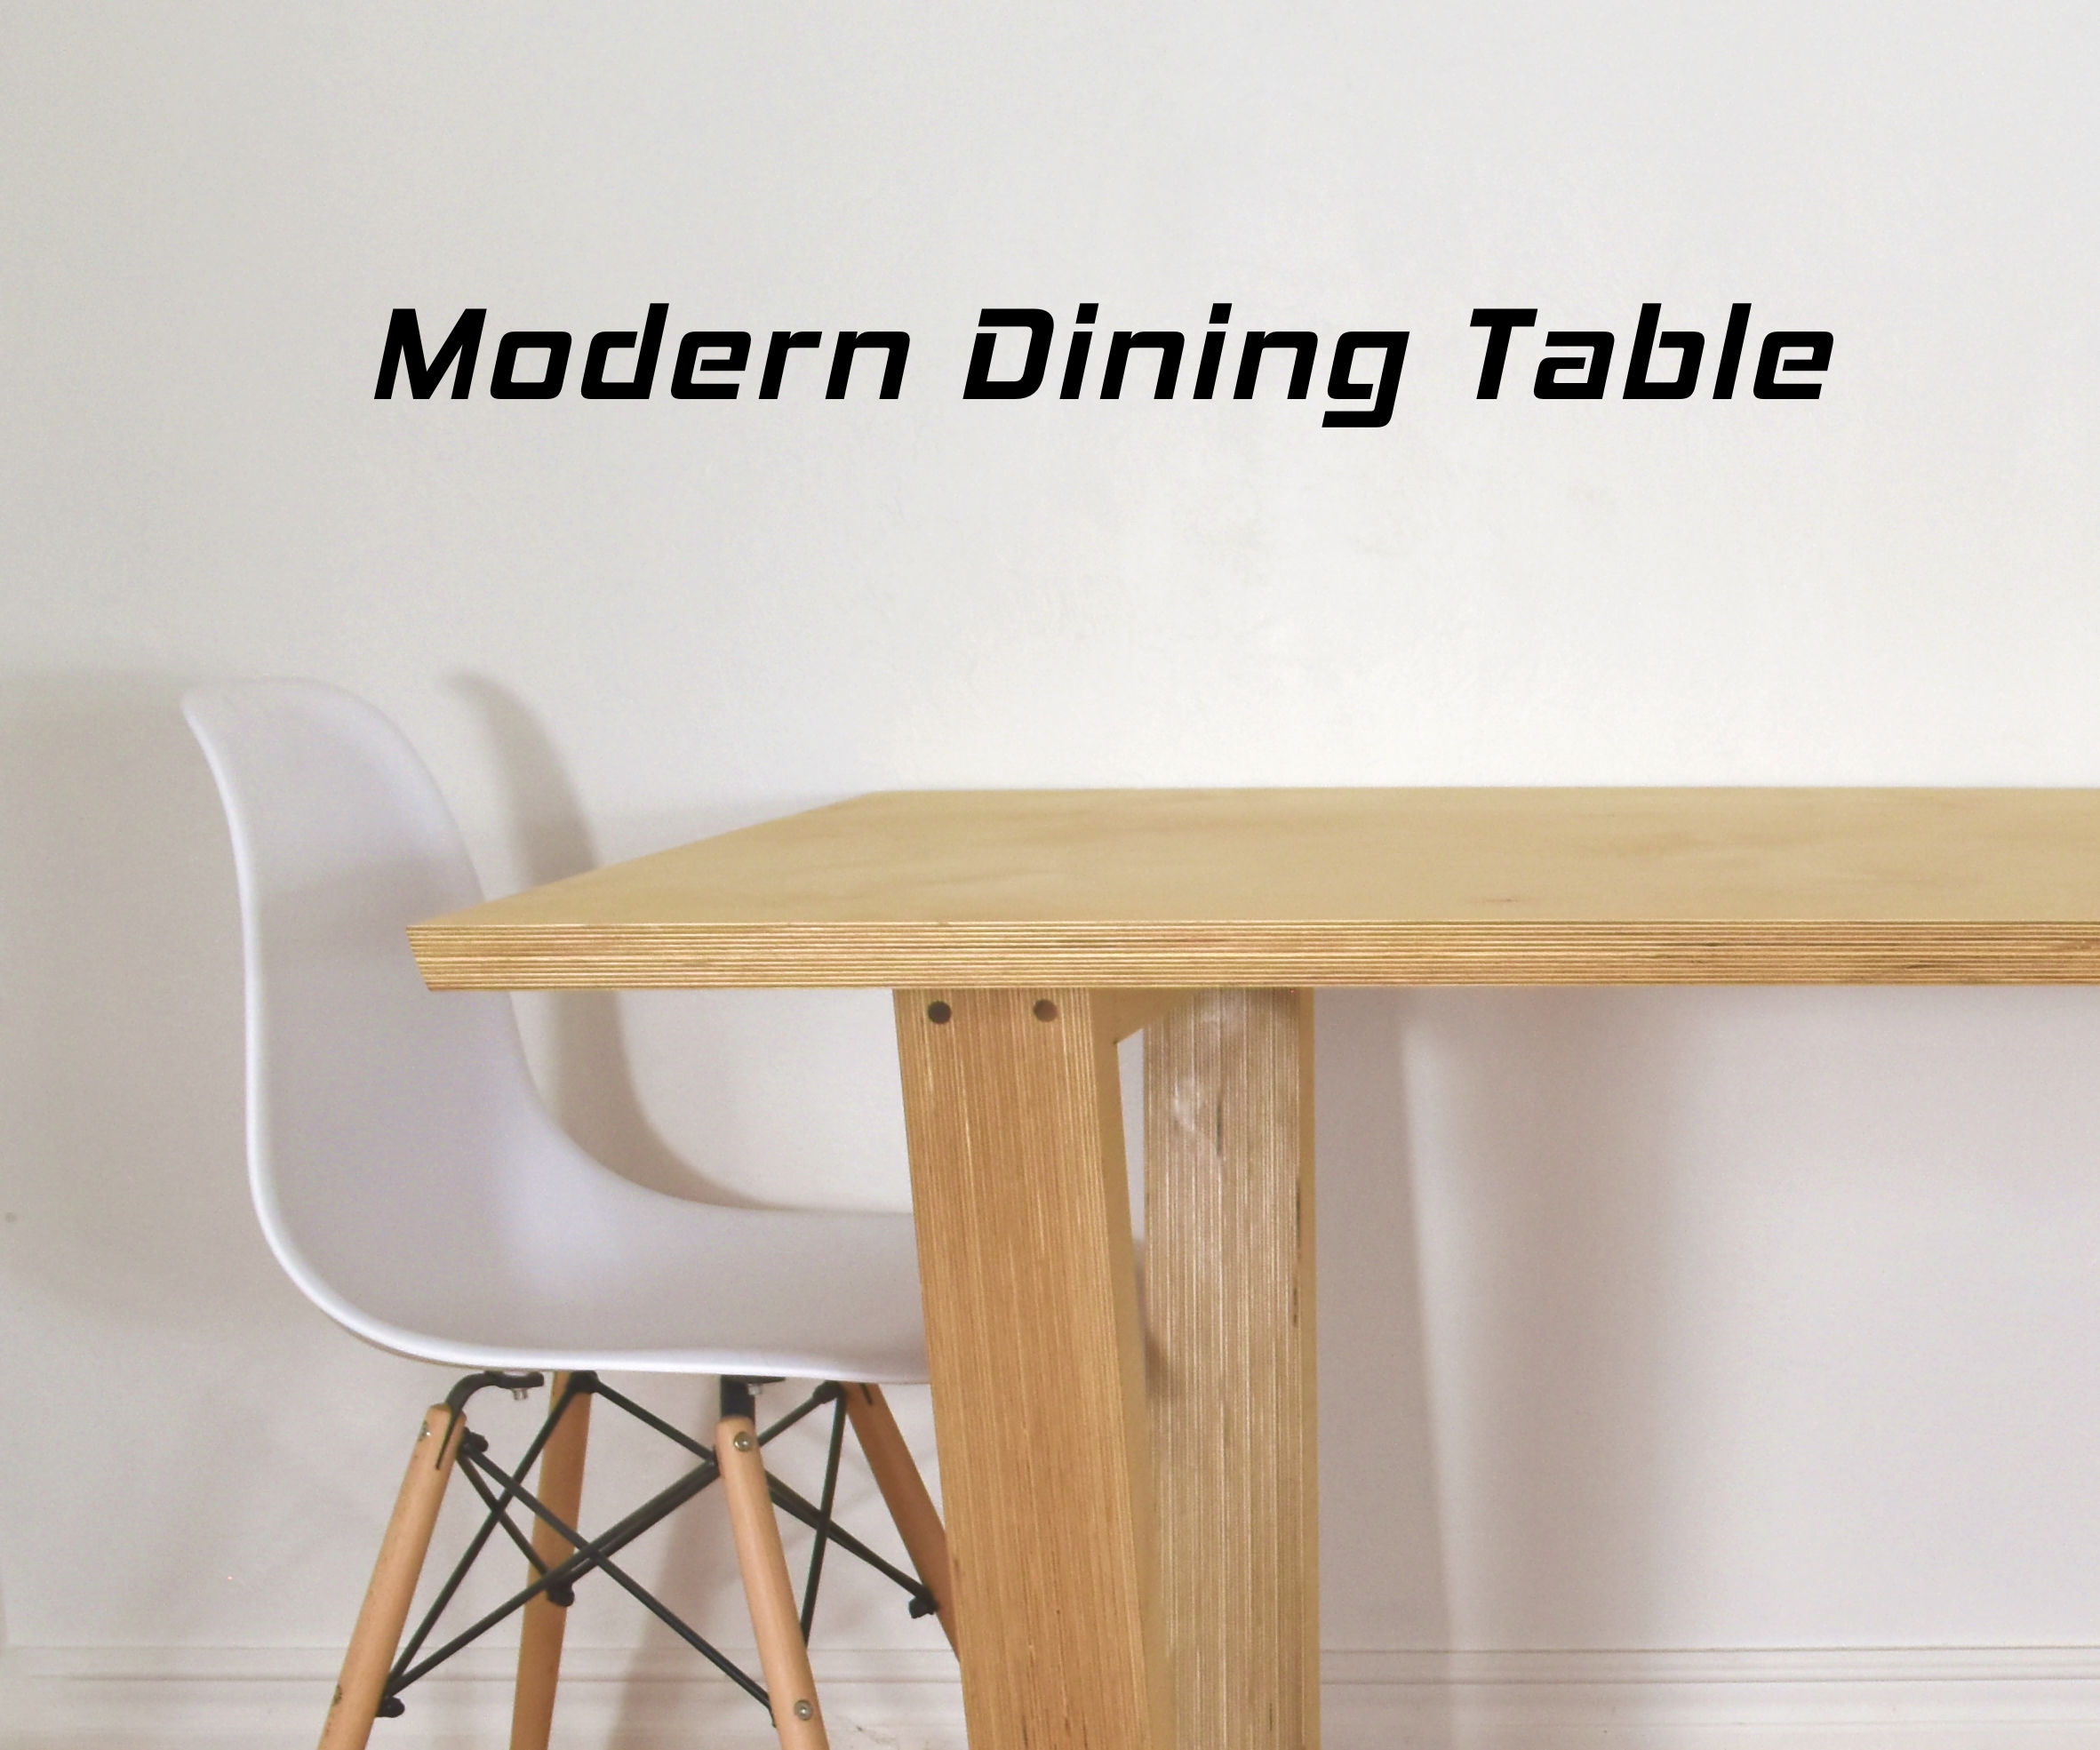 Half Inch Plywood Making High End Furniture From Plywood Diy Modern Dining Table